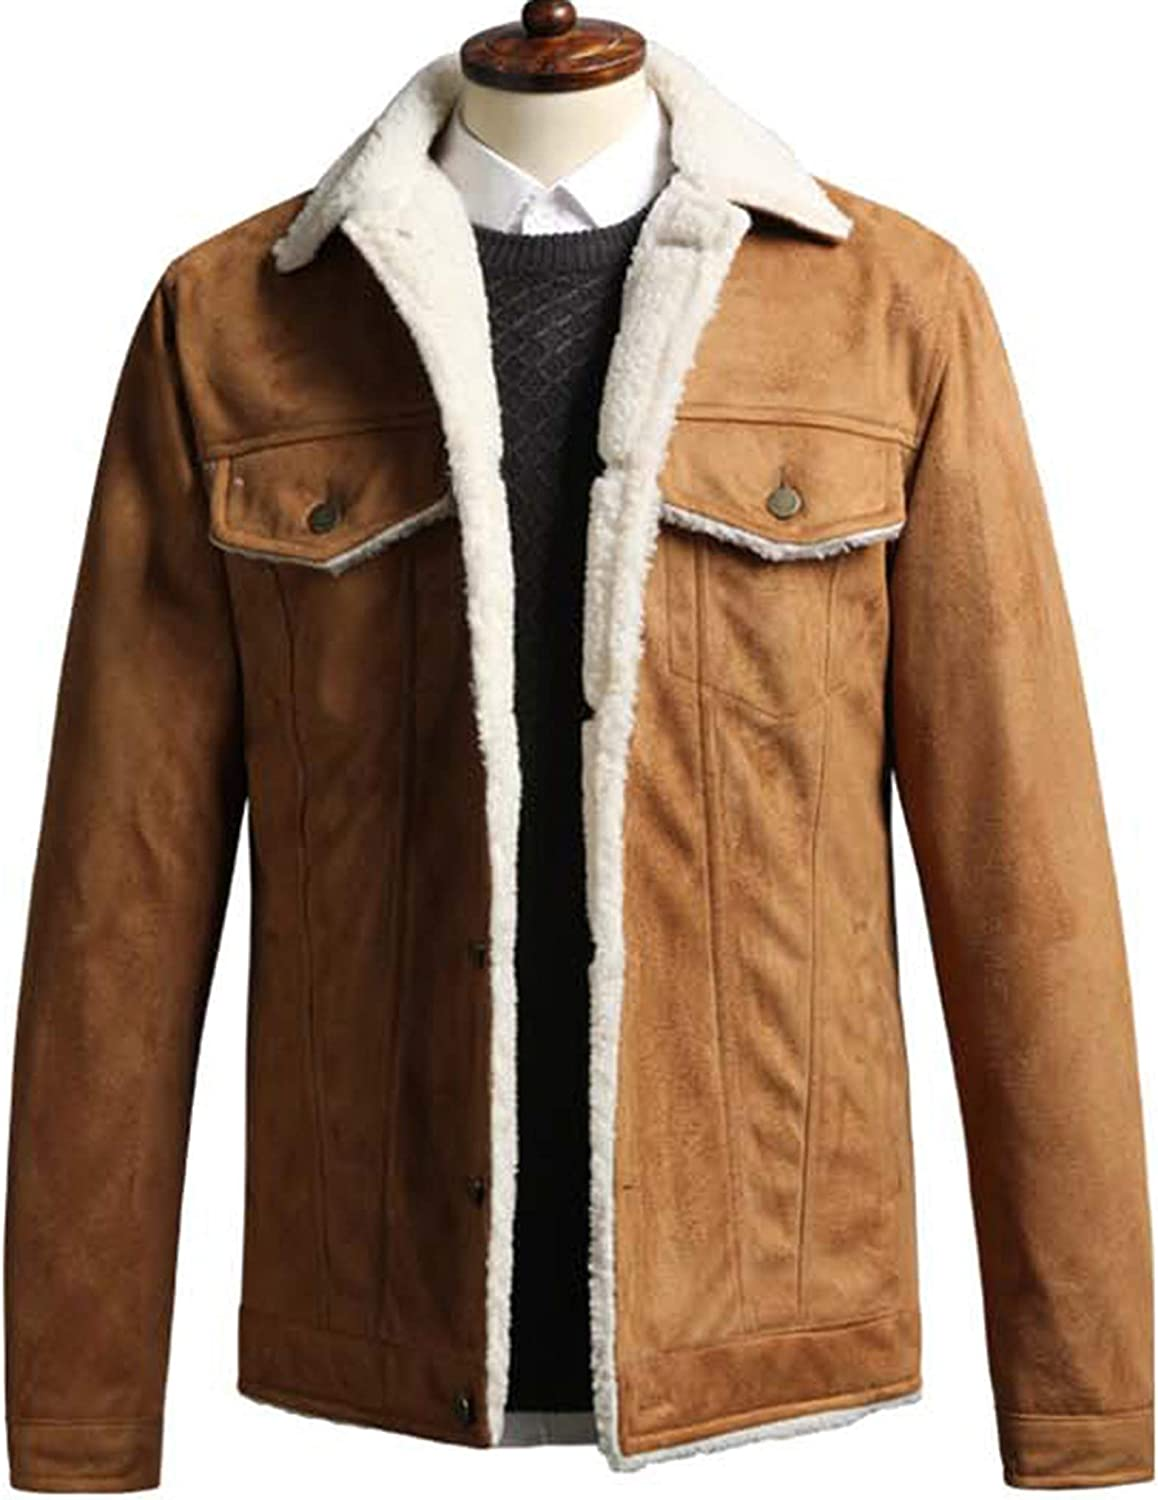 Mens Suede Directly managed store Mustang Jacket Casual Blazer S069 Jumper Hunting Ranking TOP13